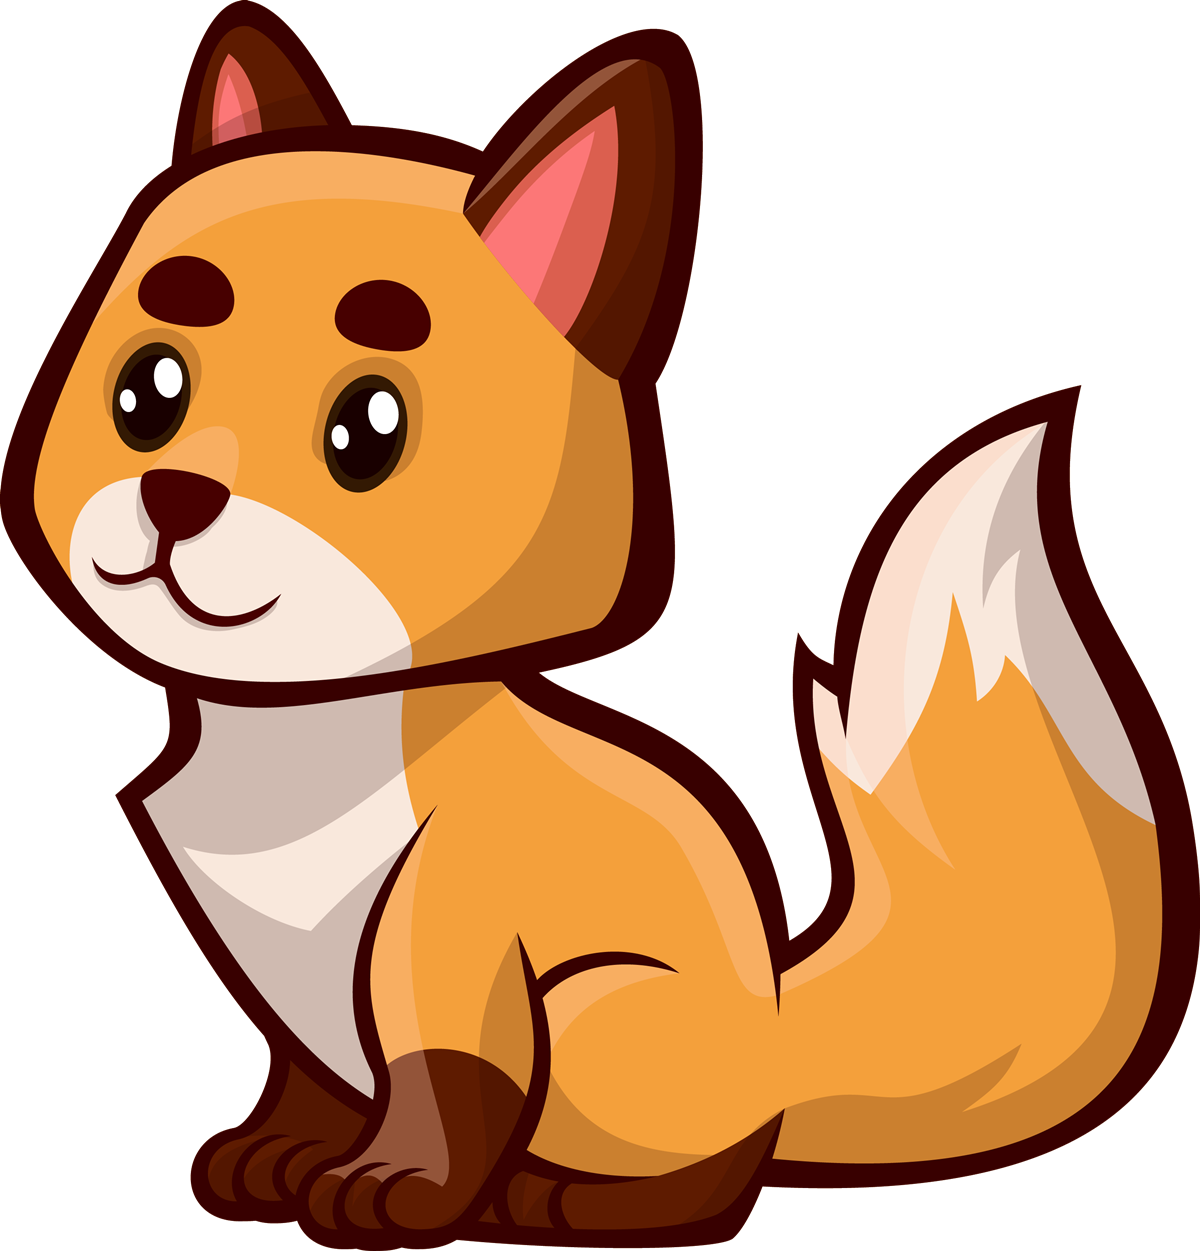 Free clipart fox. Mammal orange animal vector